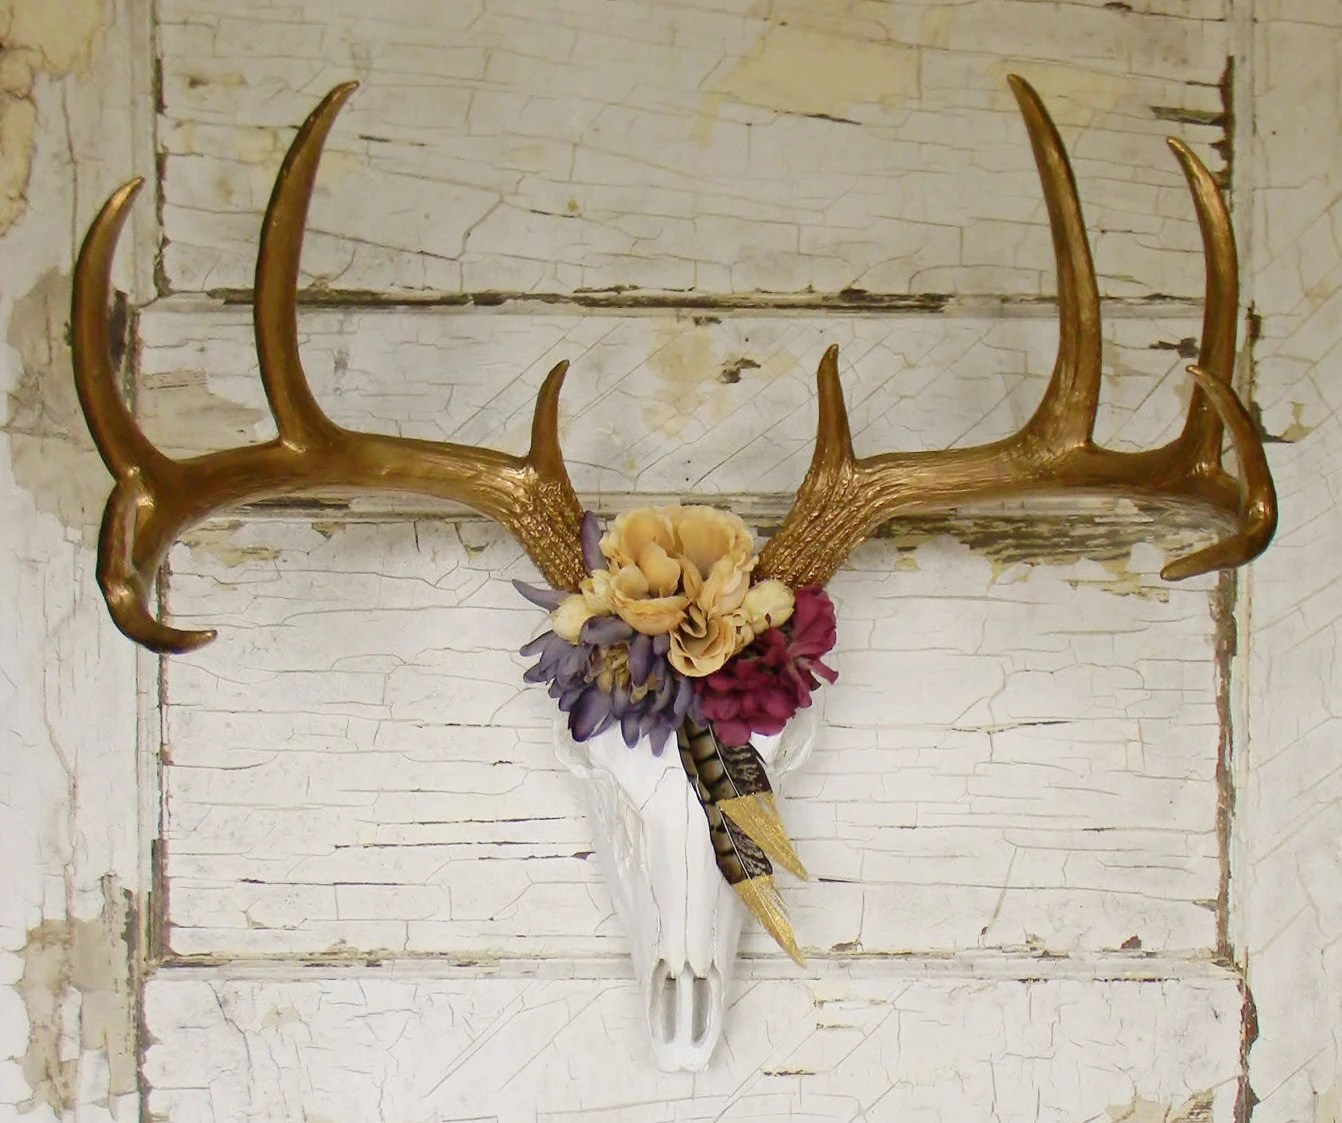 Fake Deer Skull And Antlers Deer Skull With Antlersfaux Deer Skullfaux Deer Headfaux